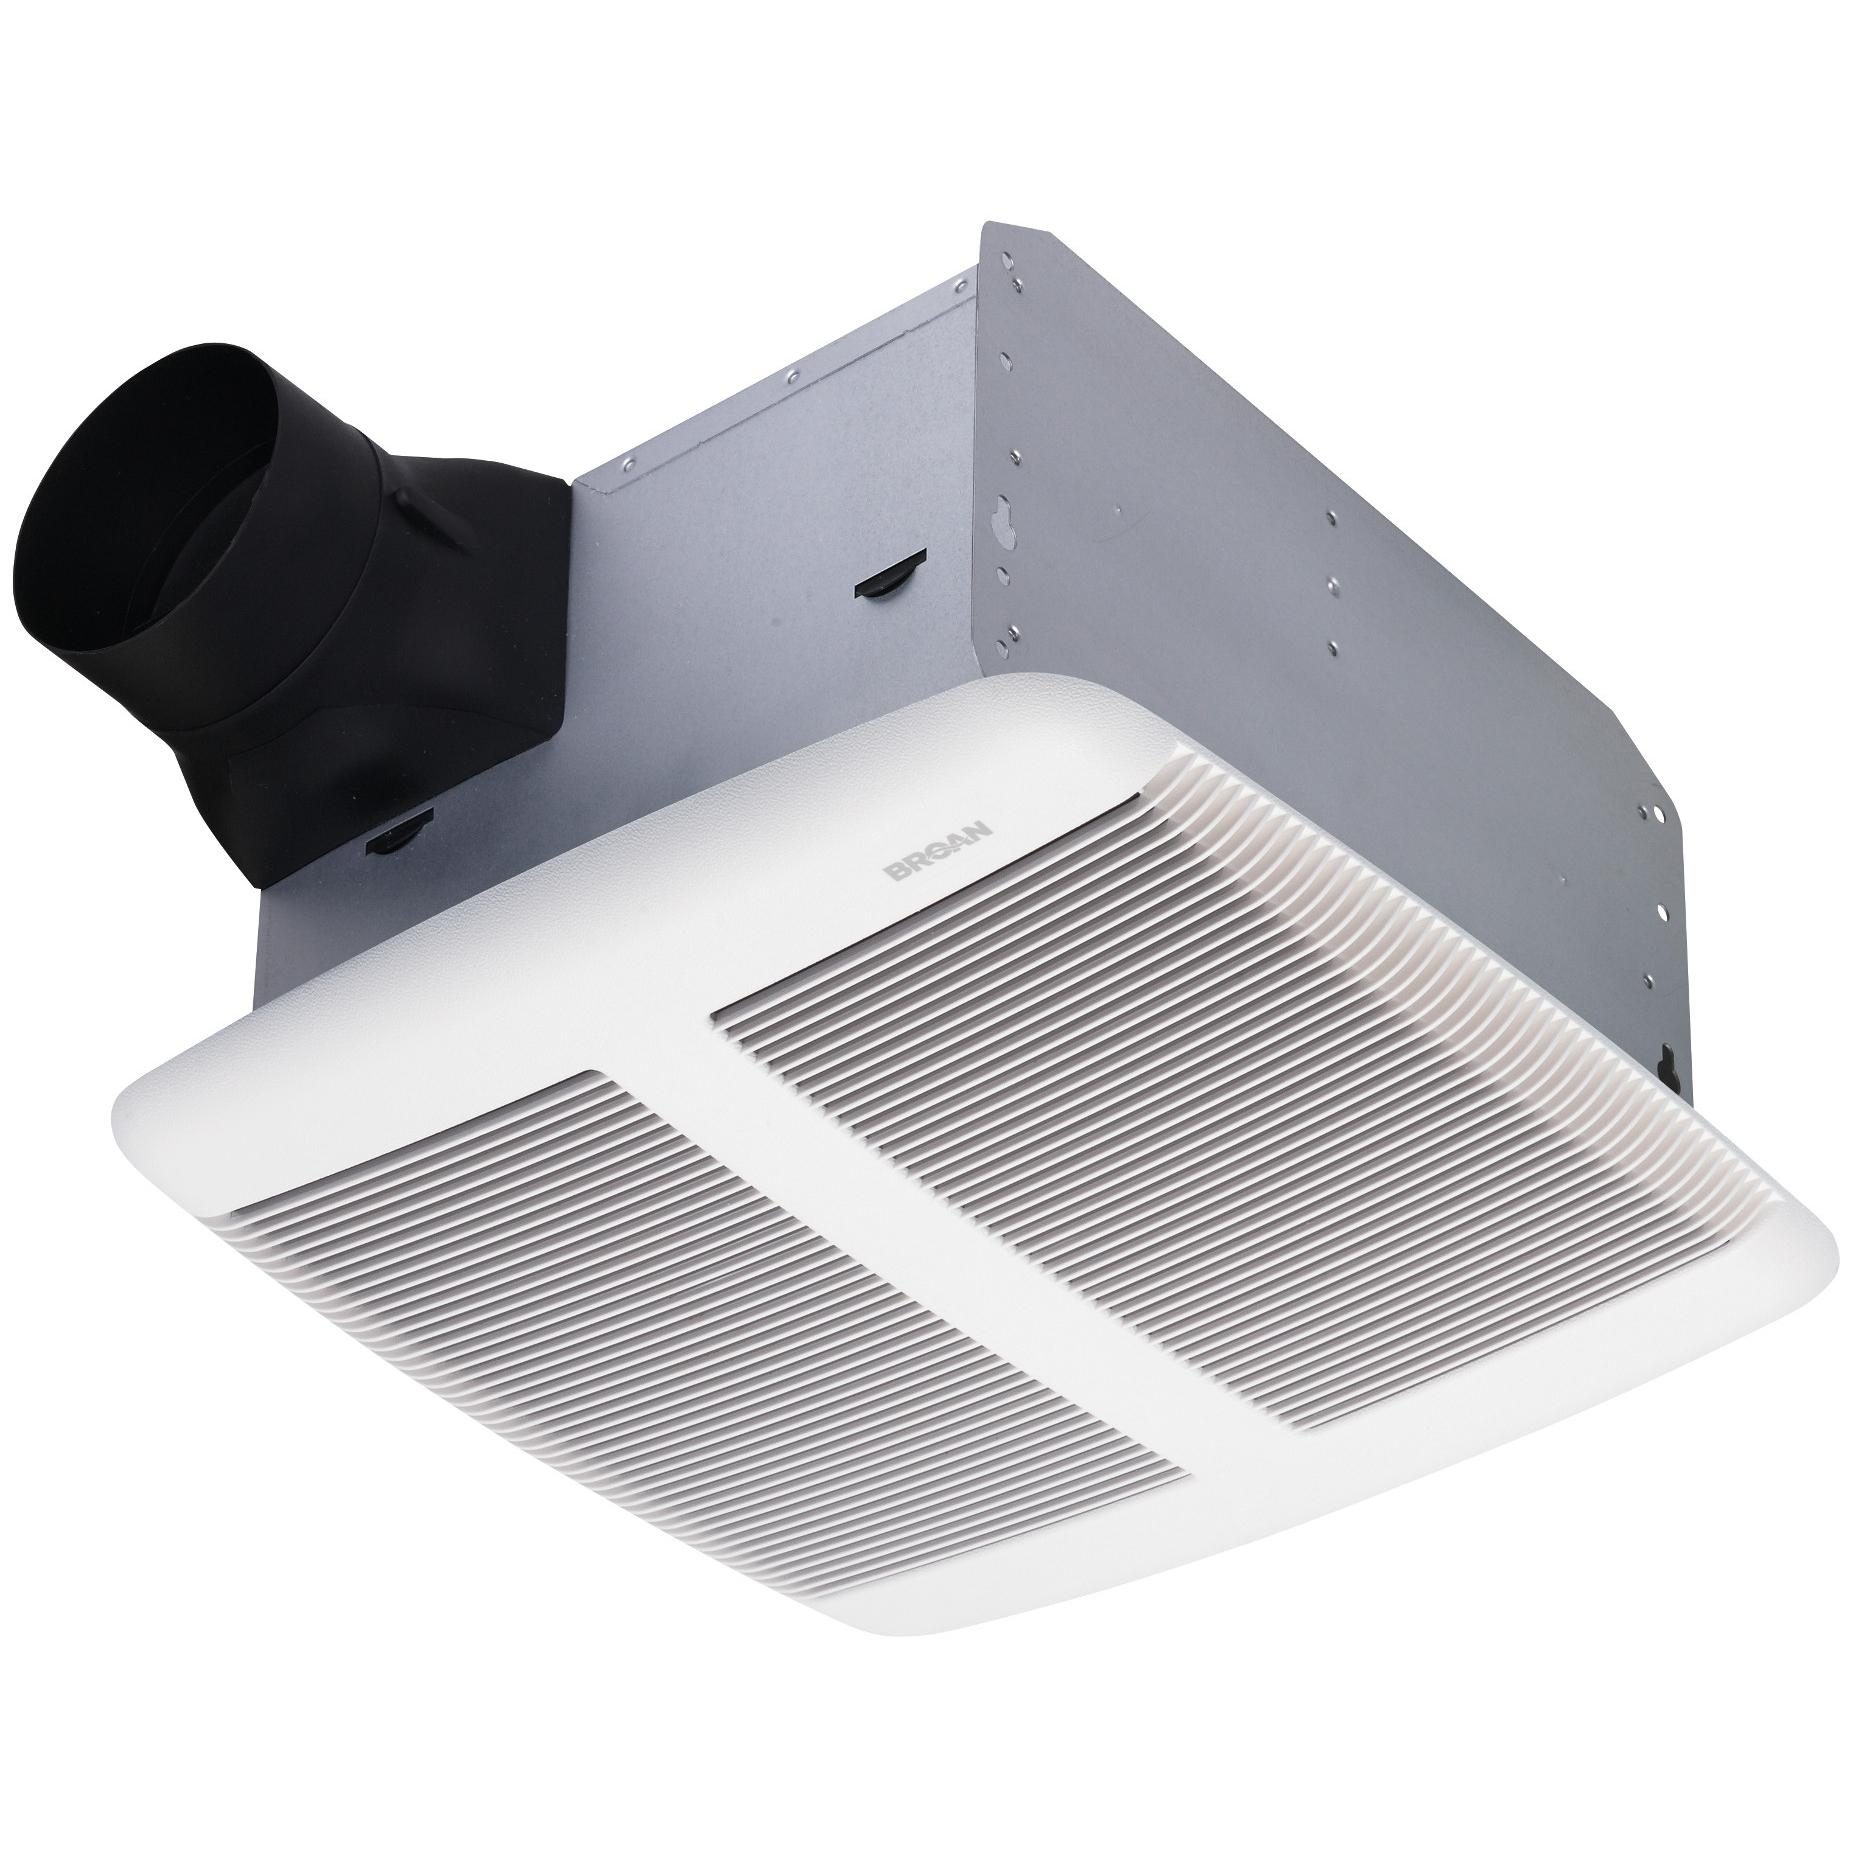 Broan Bathroom Fan Nautilus Bathroom Fan Broan Bathroom Fan With Light Bathroom Fan Bathroom